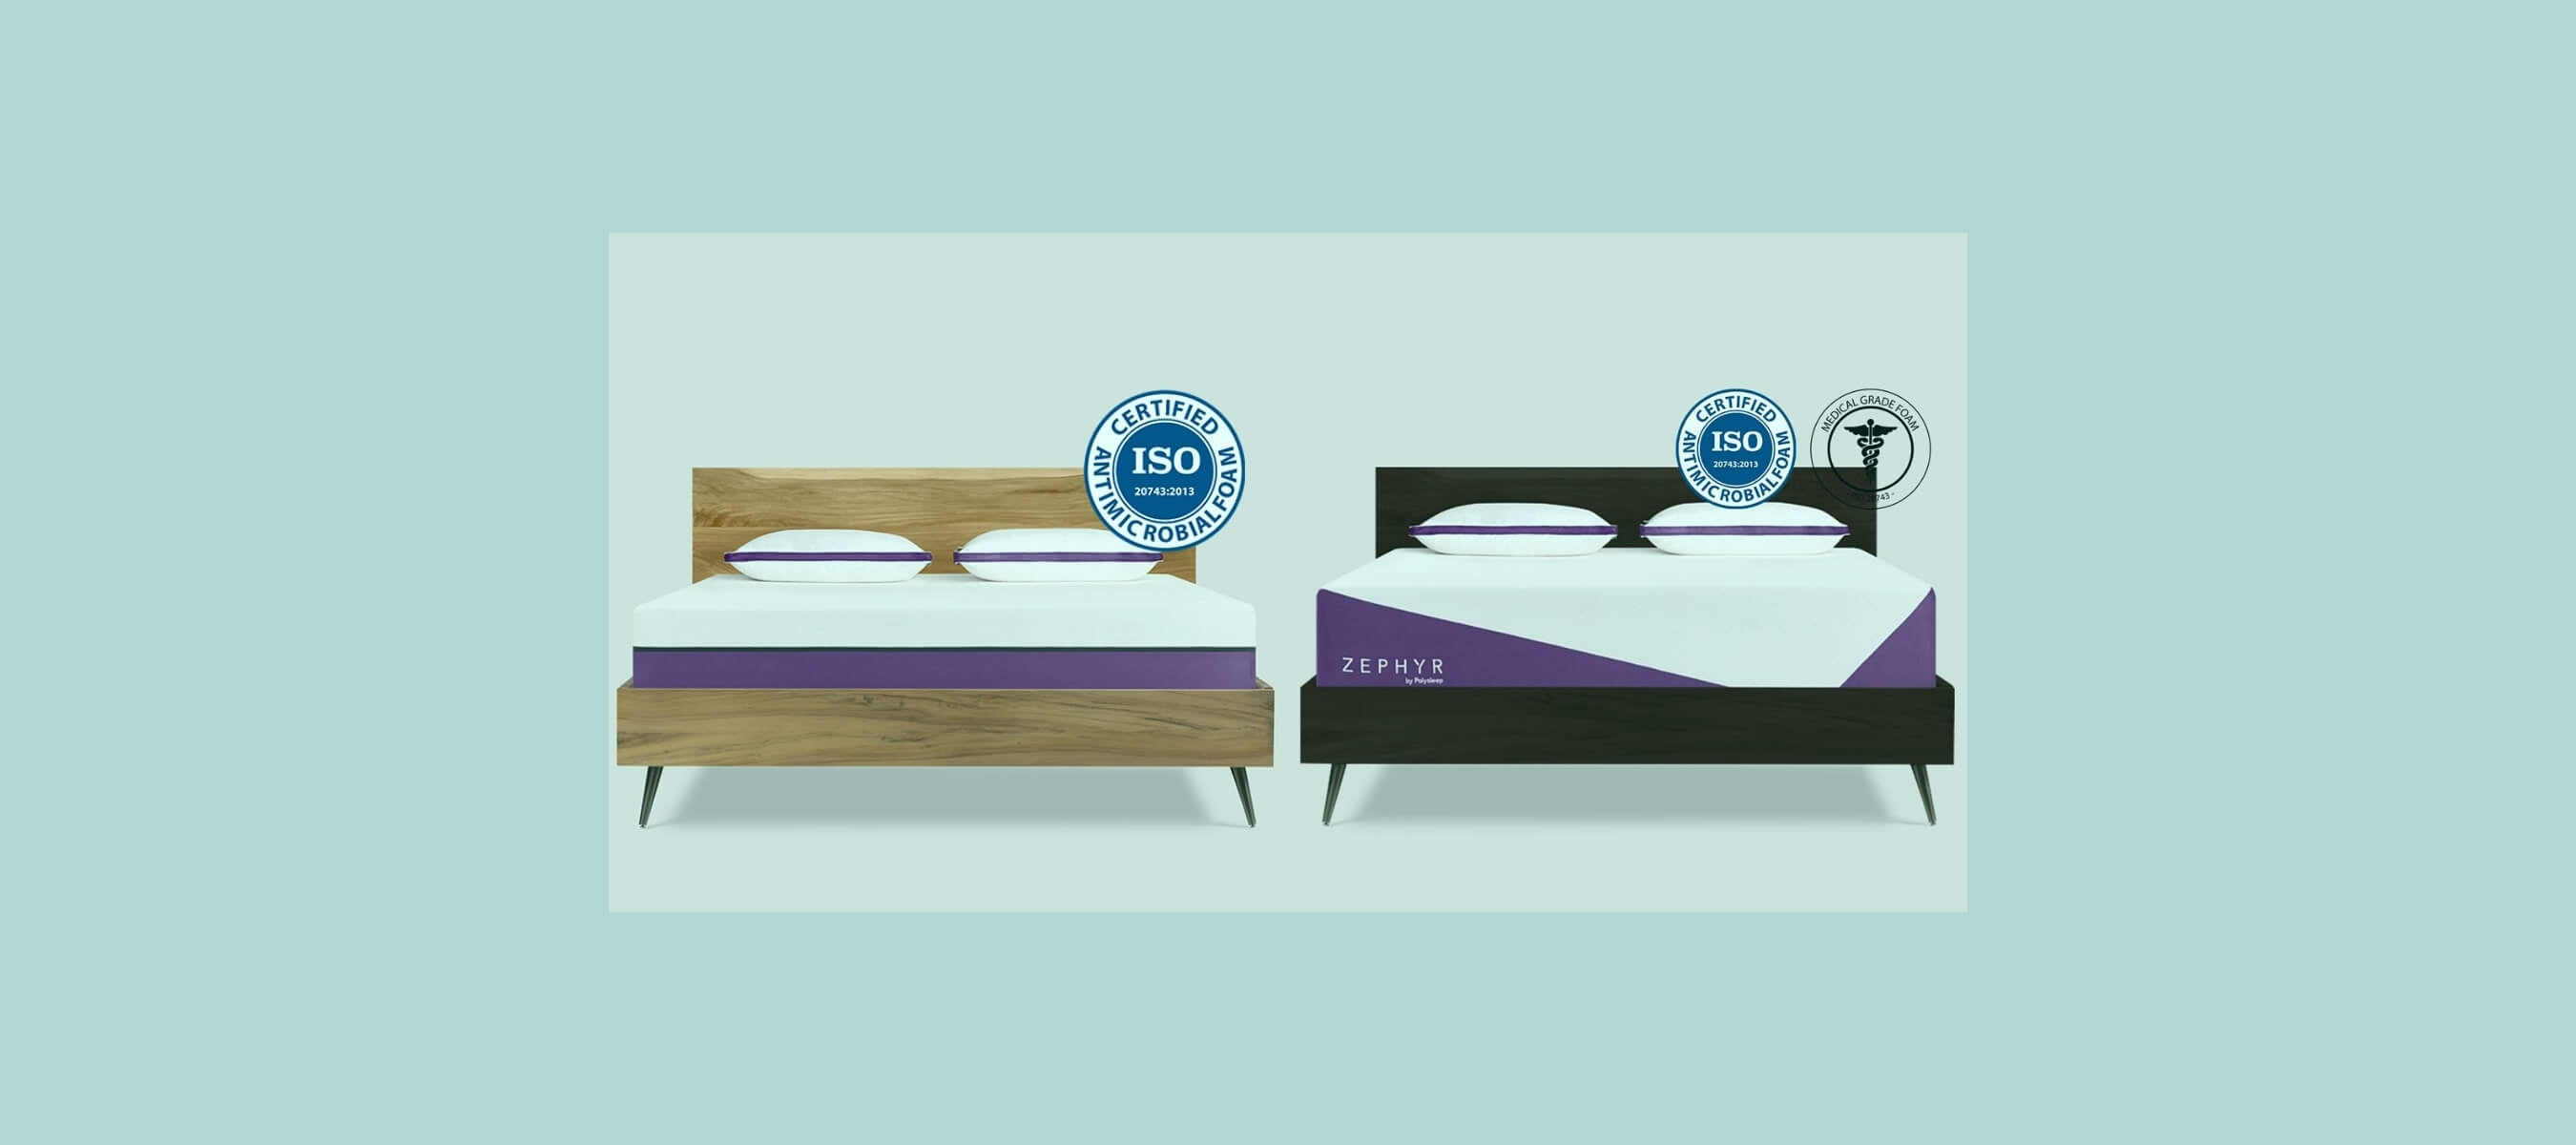 The two Polysleep mattresses ideal for overweight people